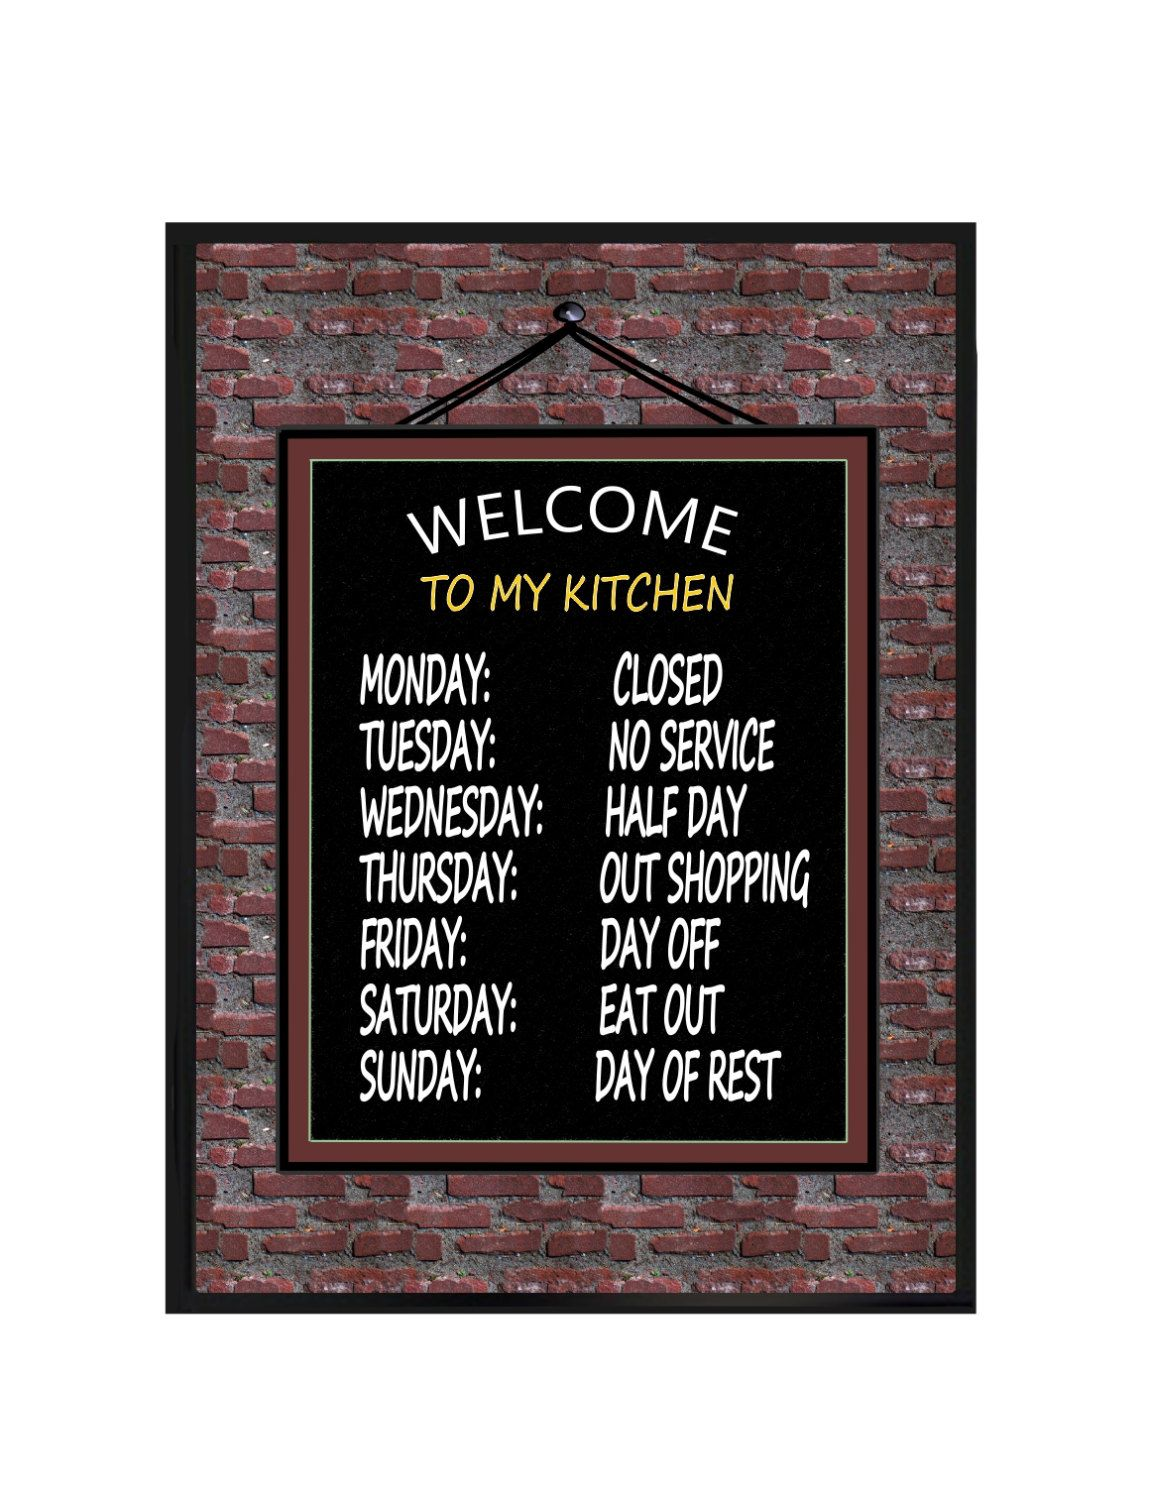 Items Similar To Welcome My Kitchen Wall Plaque 8 X 10 Wood Funny Gifts Decor Quotes Hanging Sign On Etsy